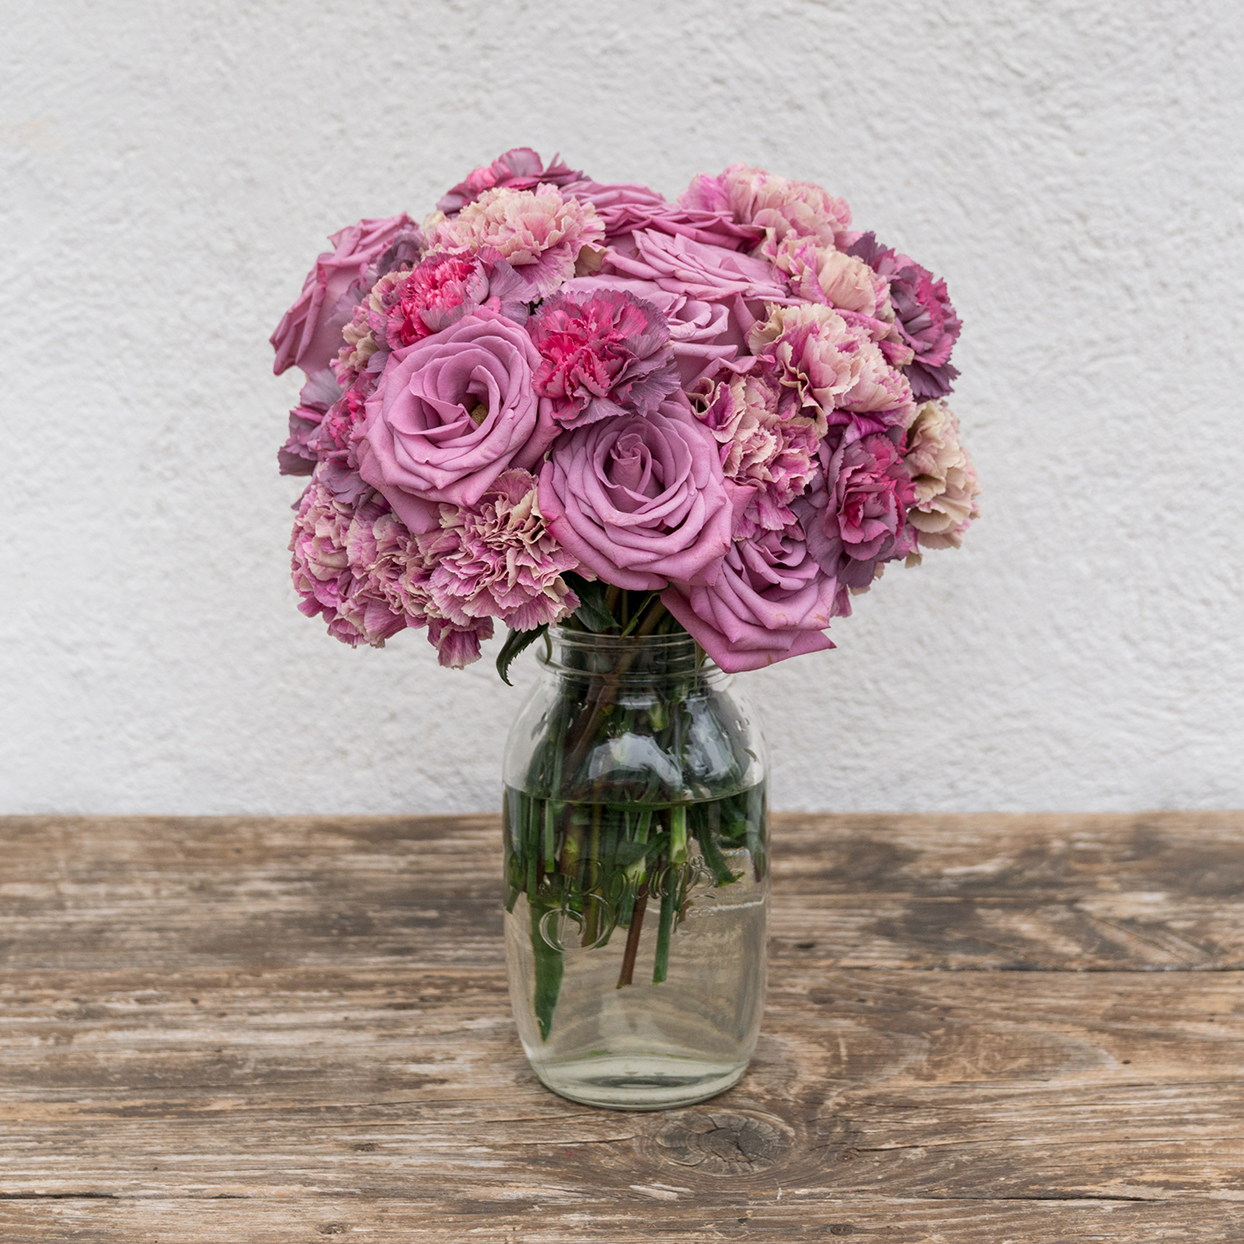 The 8 Best Flower Delivery Services to Use This Mother's Day